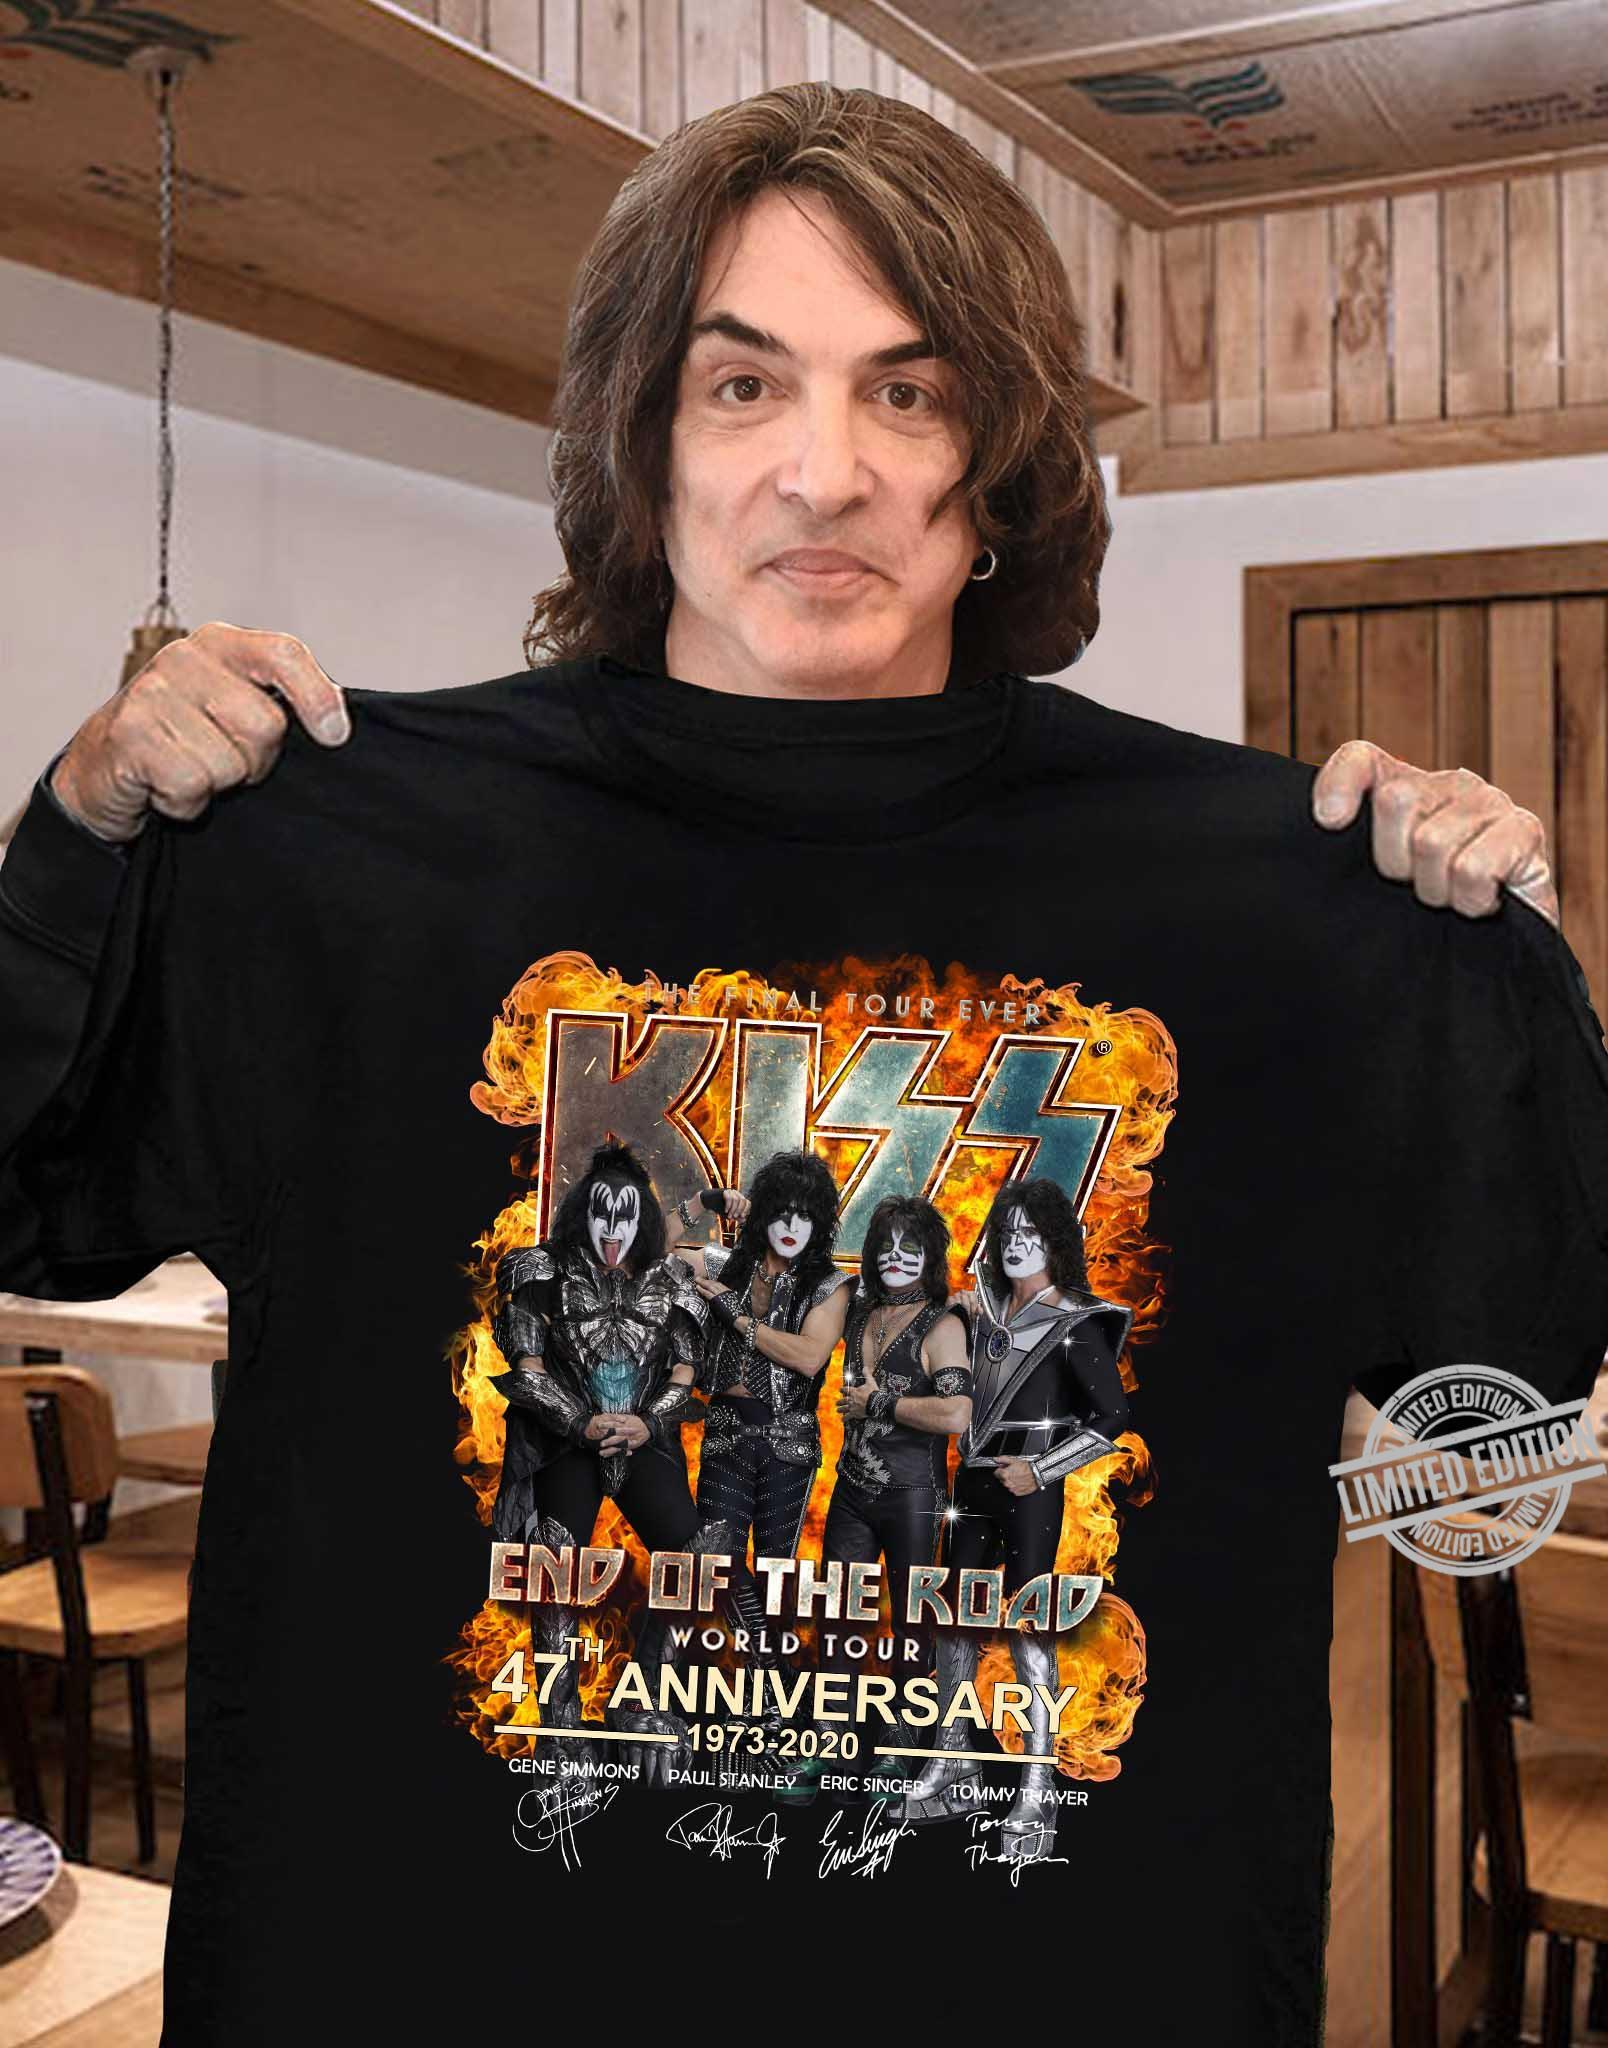 The Final Tour Ever Kiss End Of The Road World Tour 47th Anniversary 1973-2020 Shirt